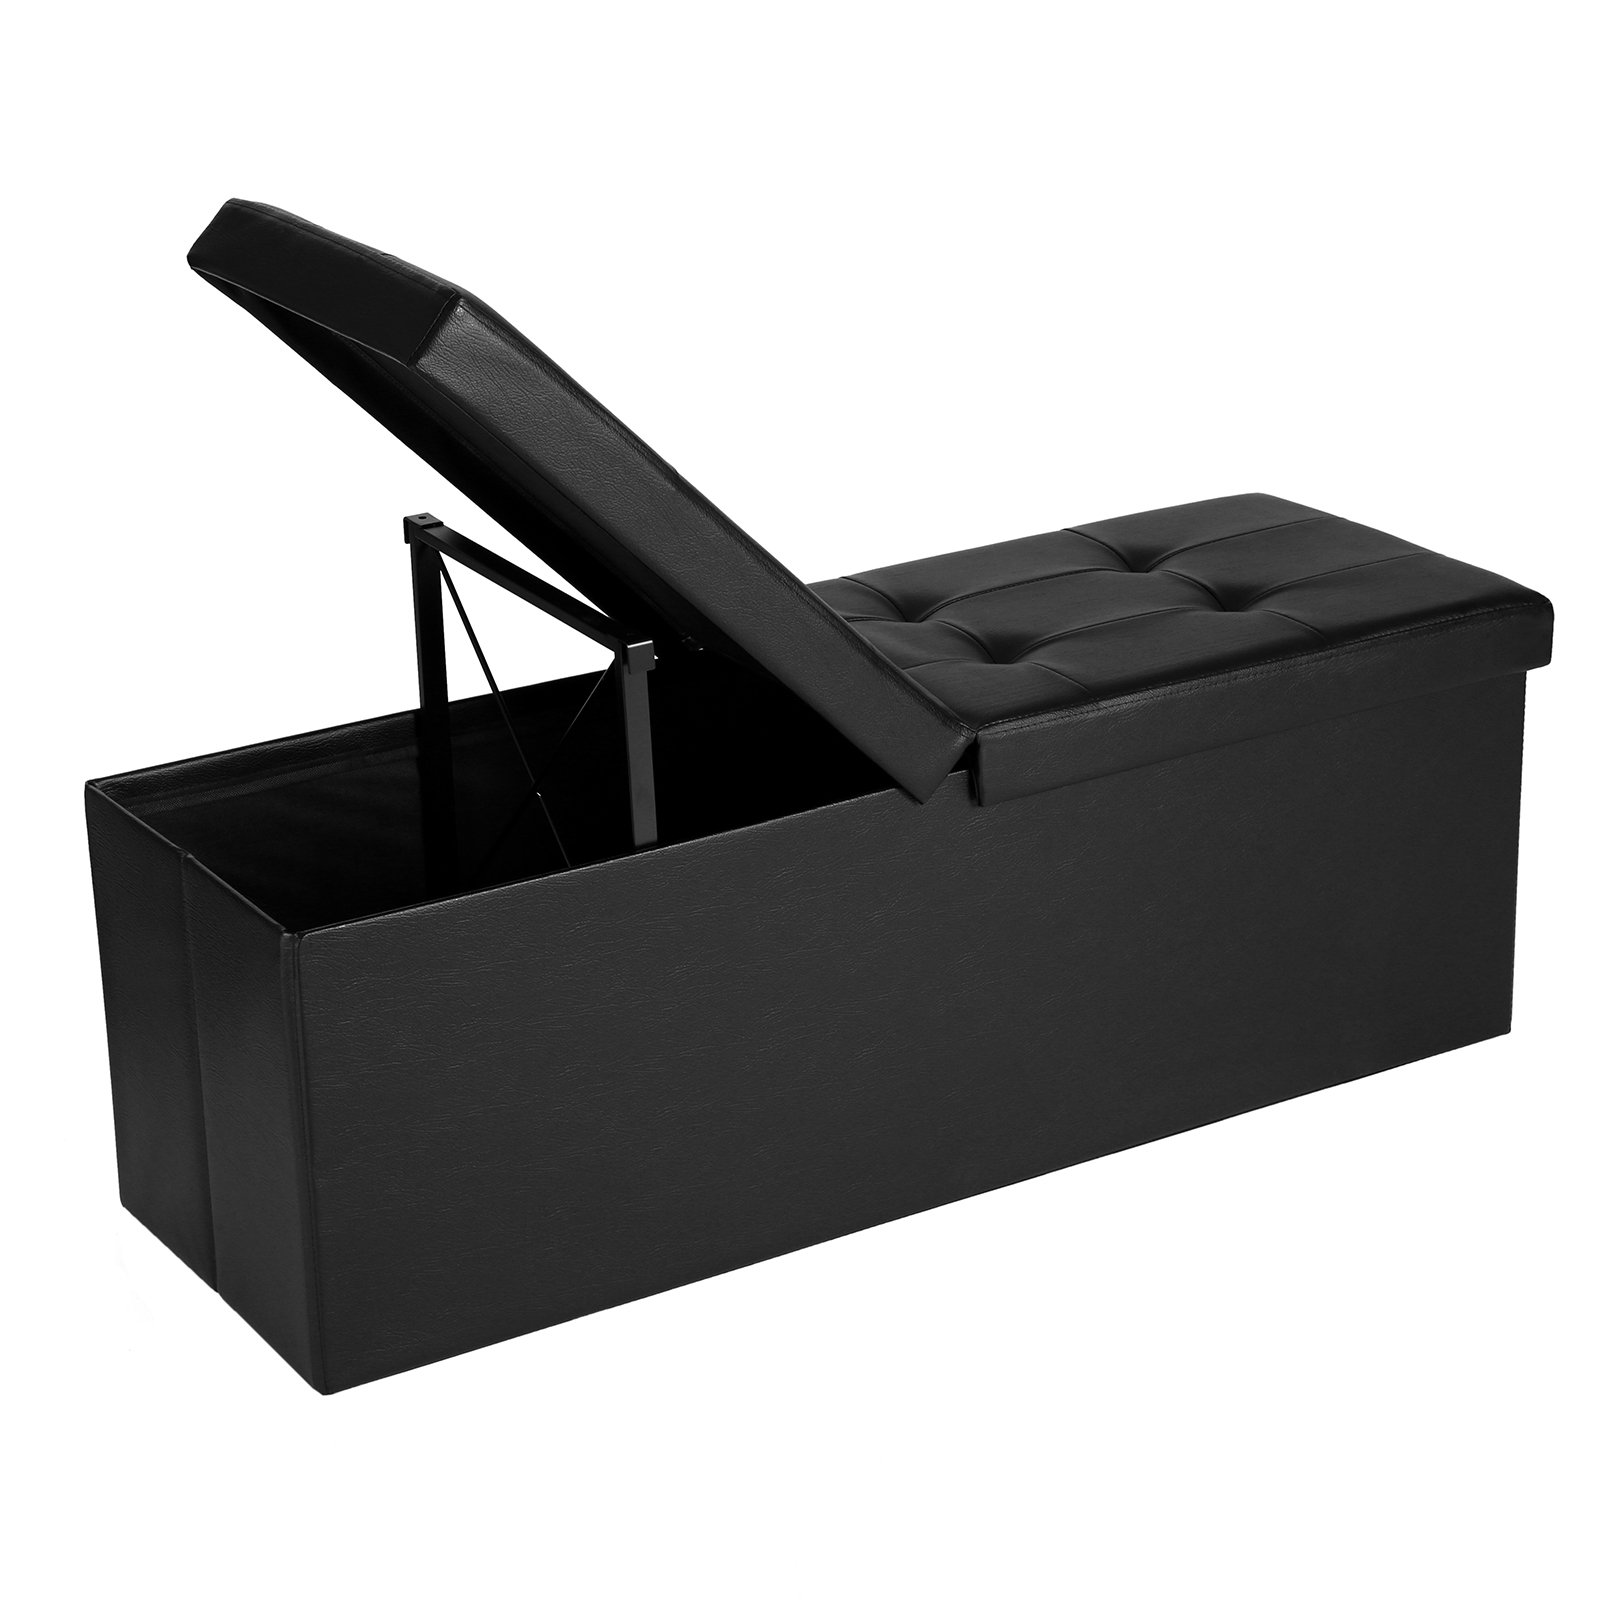 SONGMICS 43'' L Folding Storage Ottoman Bench with Flipping Lid, Faux Leather Storage Chest with Iron Frame Support, Black ULSF75BK